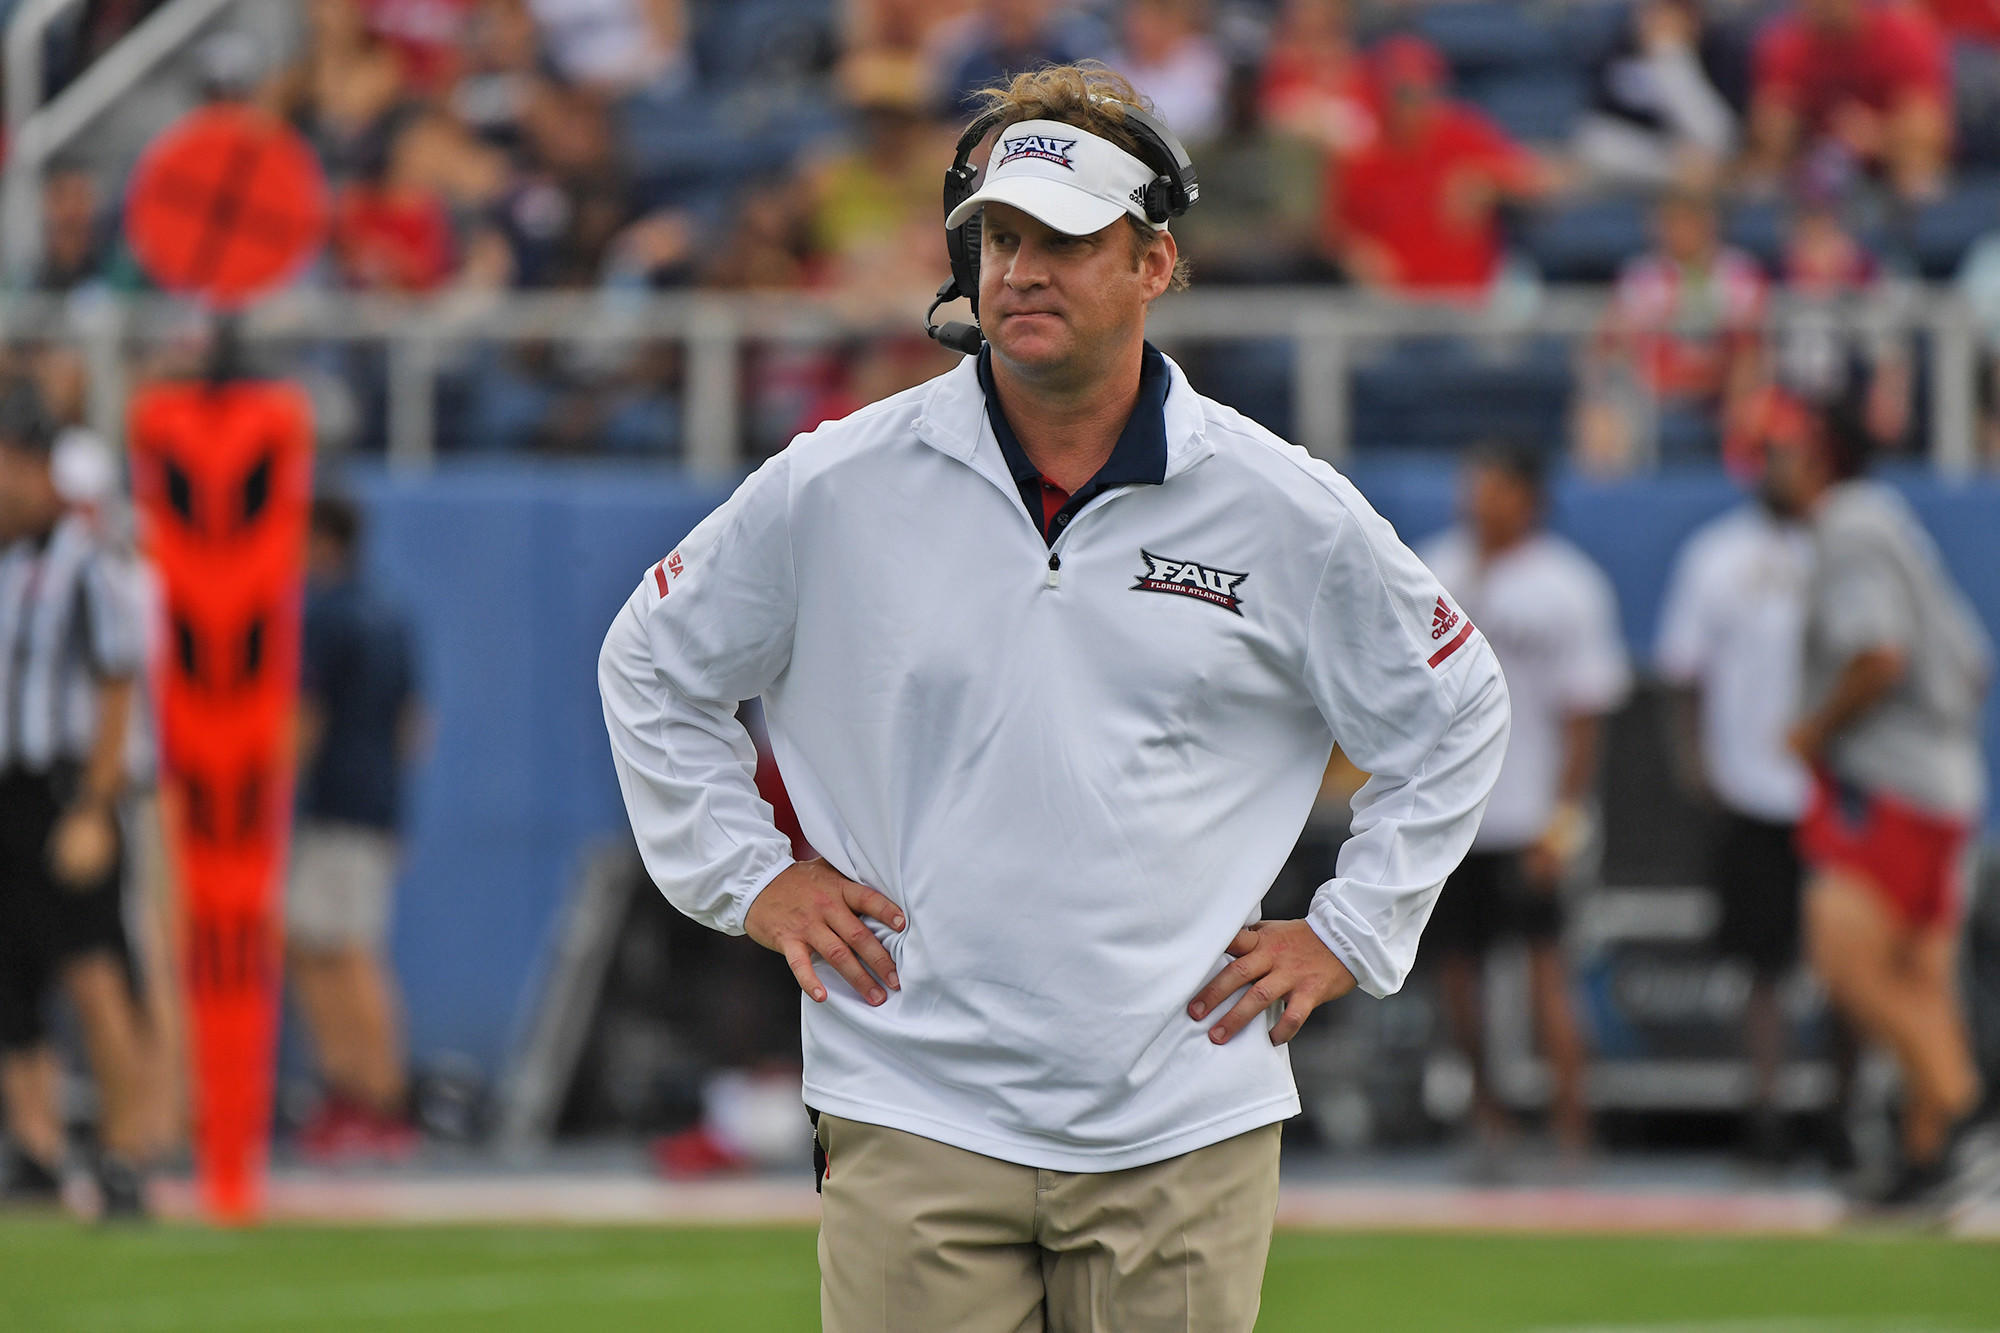 coach lane kiffin reaffirms his commitment to fau in espn interview